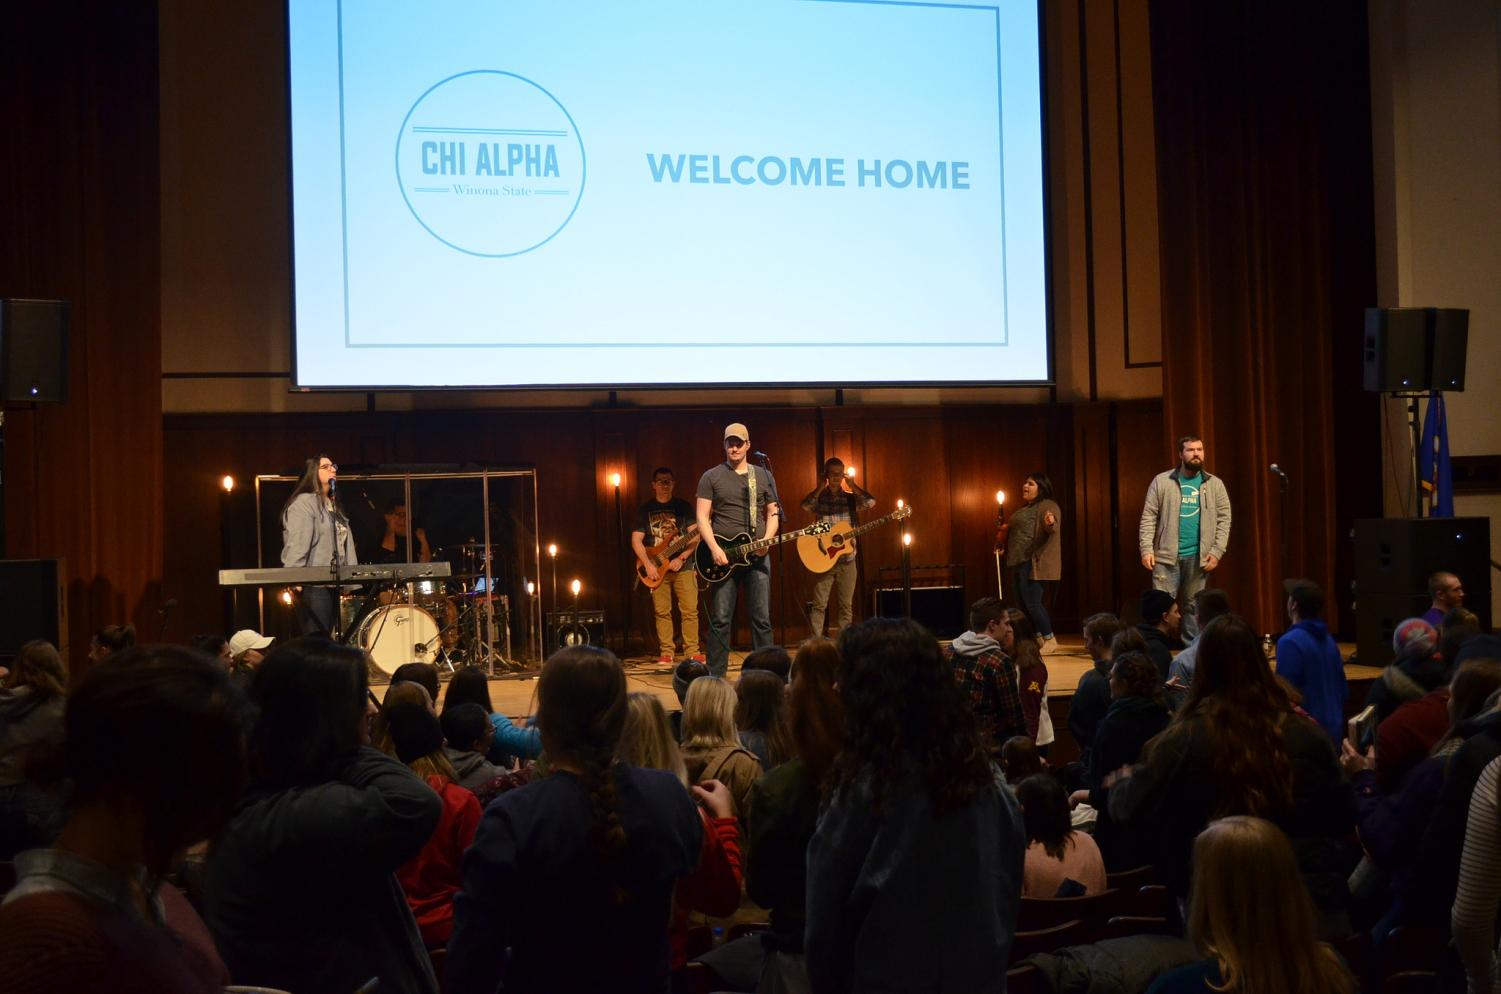 Chi Alpha is a national organization affiliated with 350 campuses and local roots as a campus ministry at Winona State. Starting each weekly Thursday meeting with a musical performance by staff members, all in attendance joins in and the time is used to connect with God.